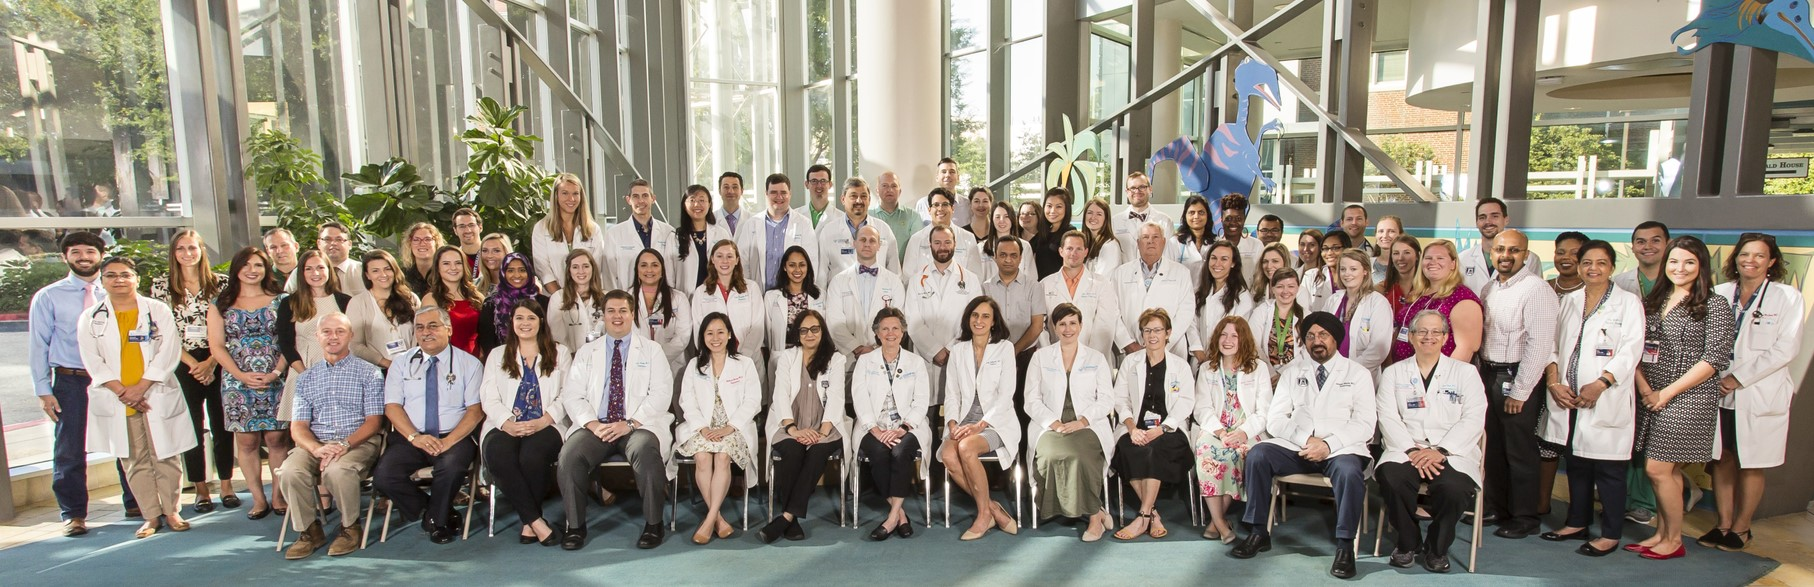 Pediatric Faculty and Housestaff 2020-2021